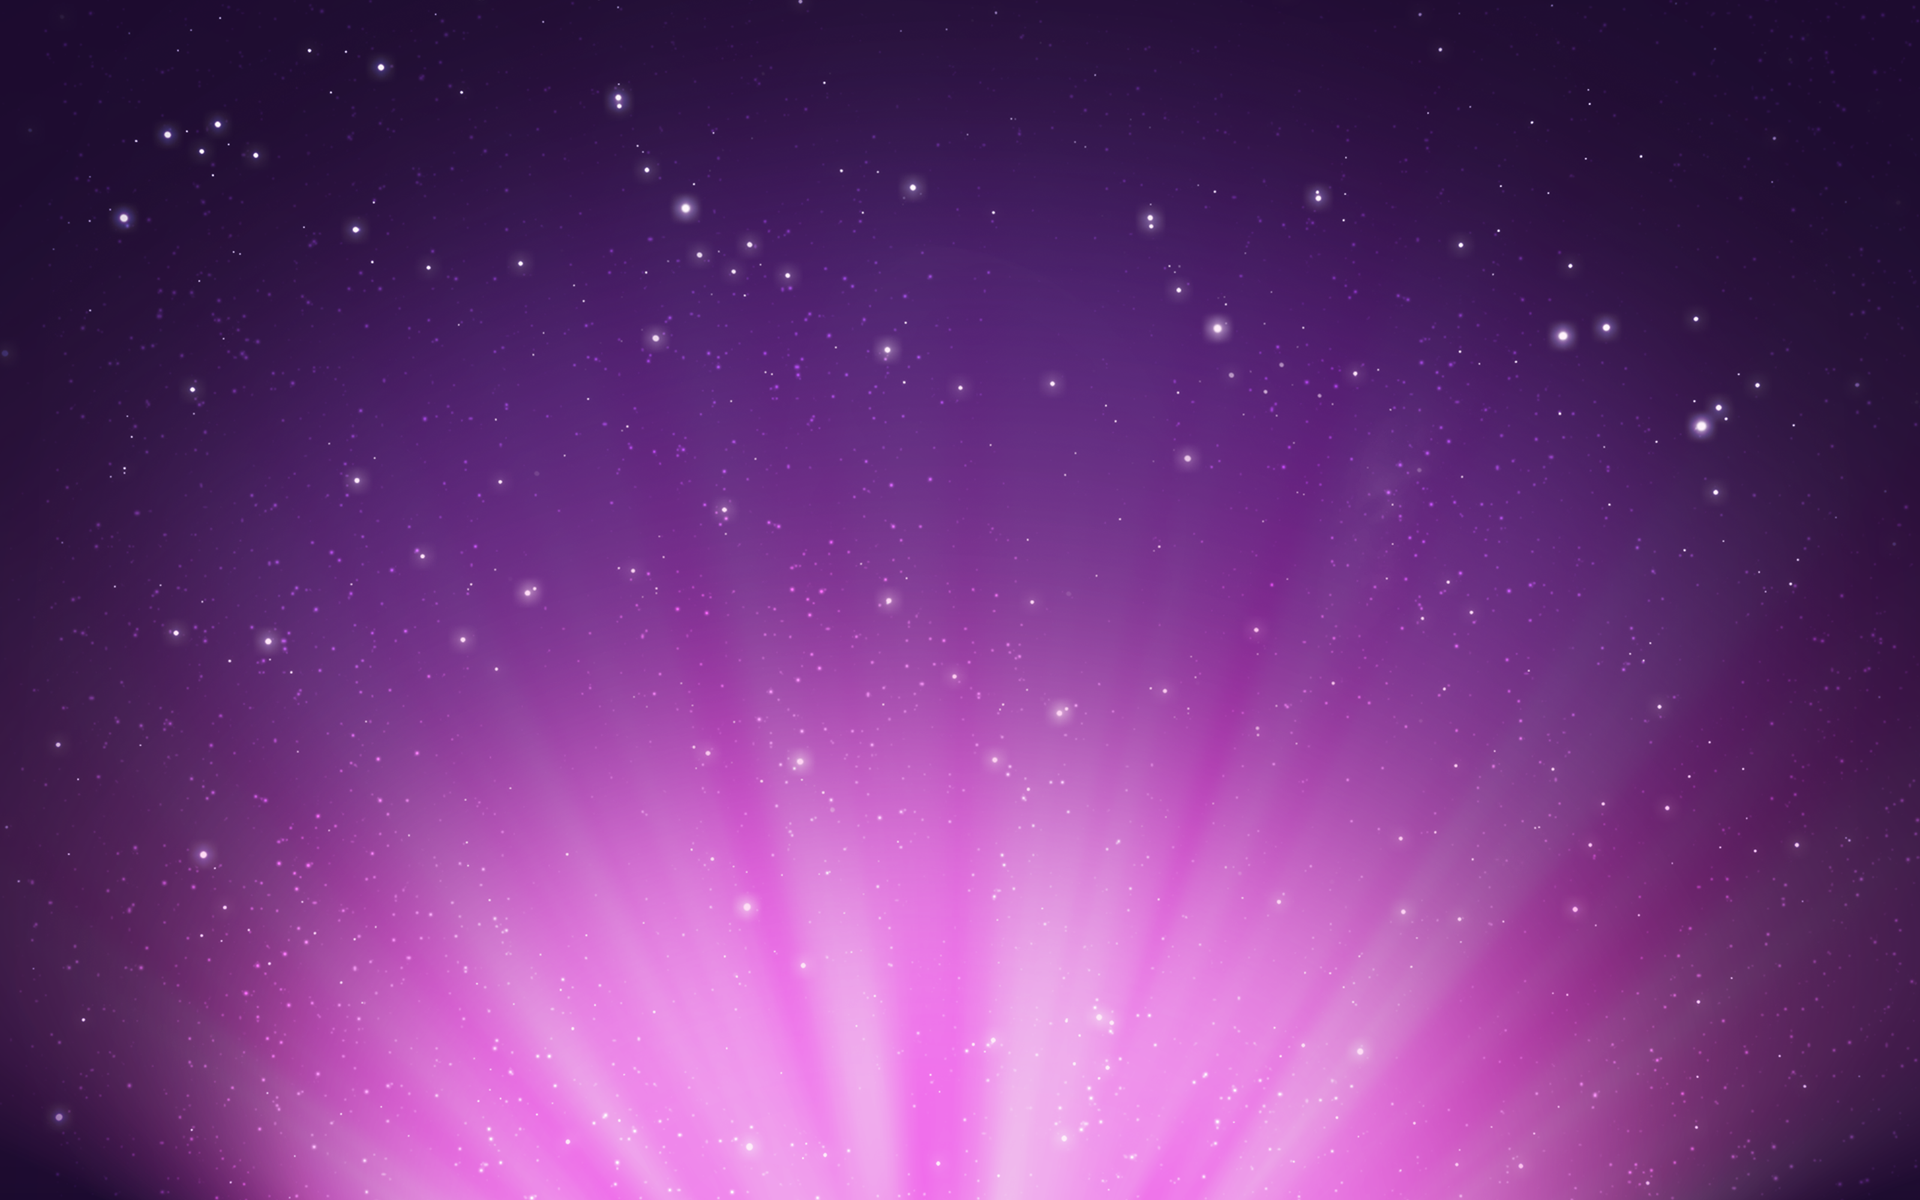 Full HD Wallpapers   Backgrounds, Purple, Space, Stars - Pink Star PNG HD